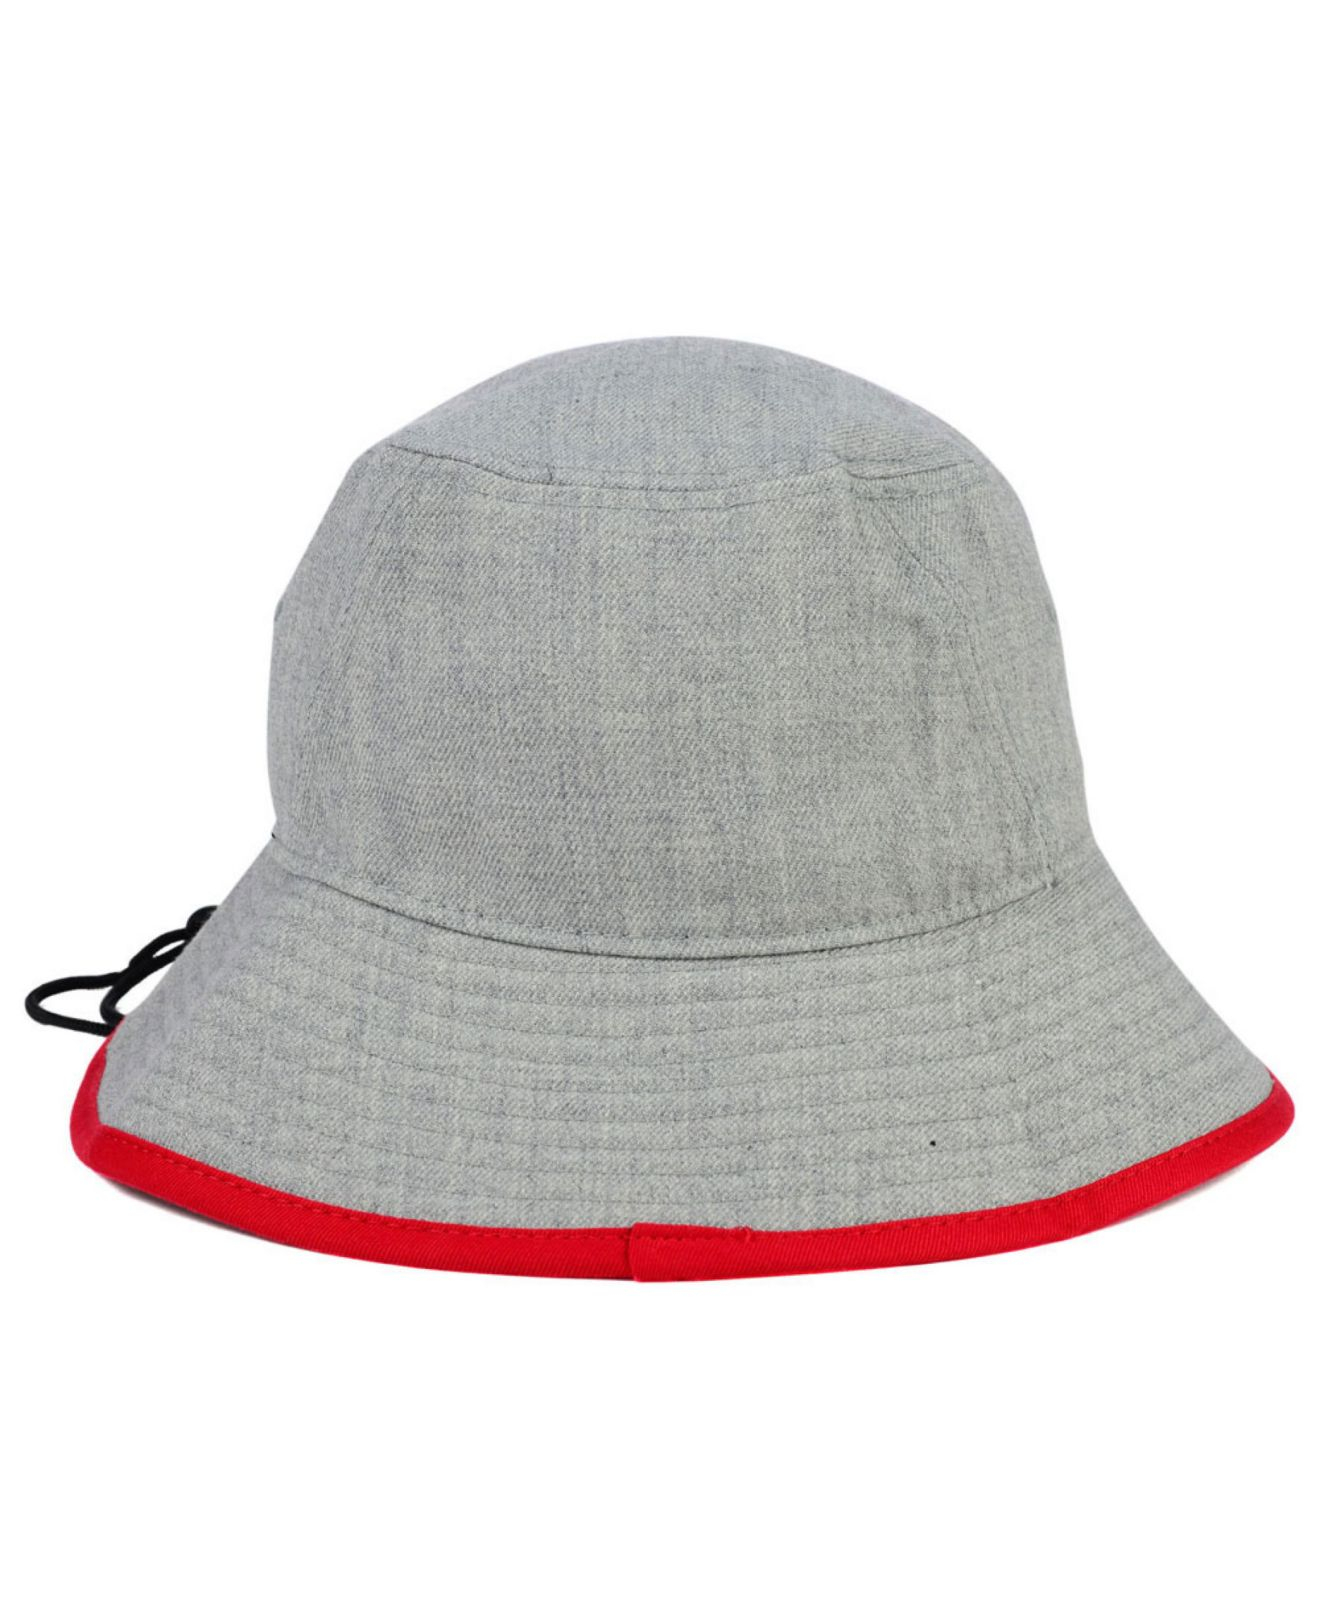 low priced 9a788 6c692 KTZ North Carolina State Wolfpack Tip Bucket Hat in Gray for Men - Lyst